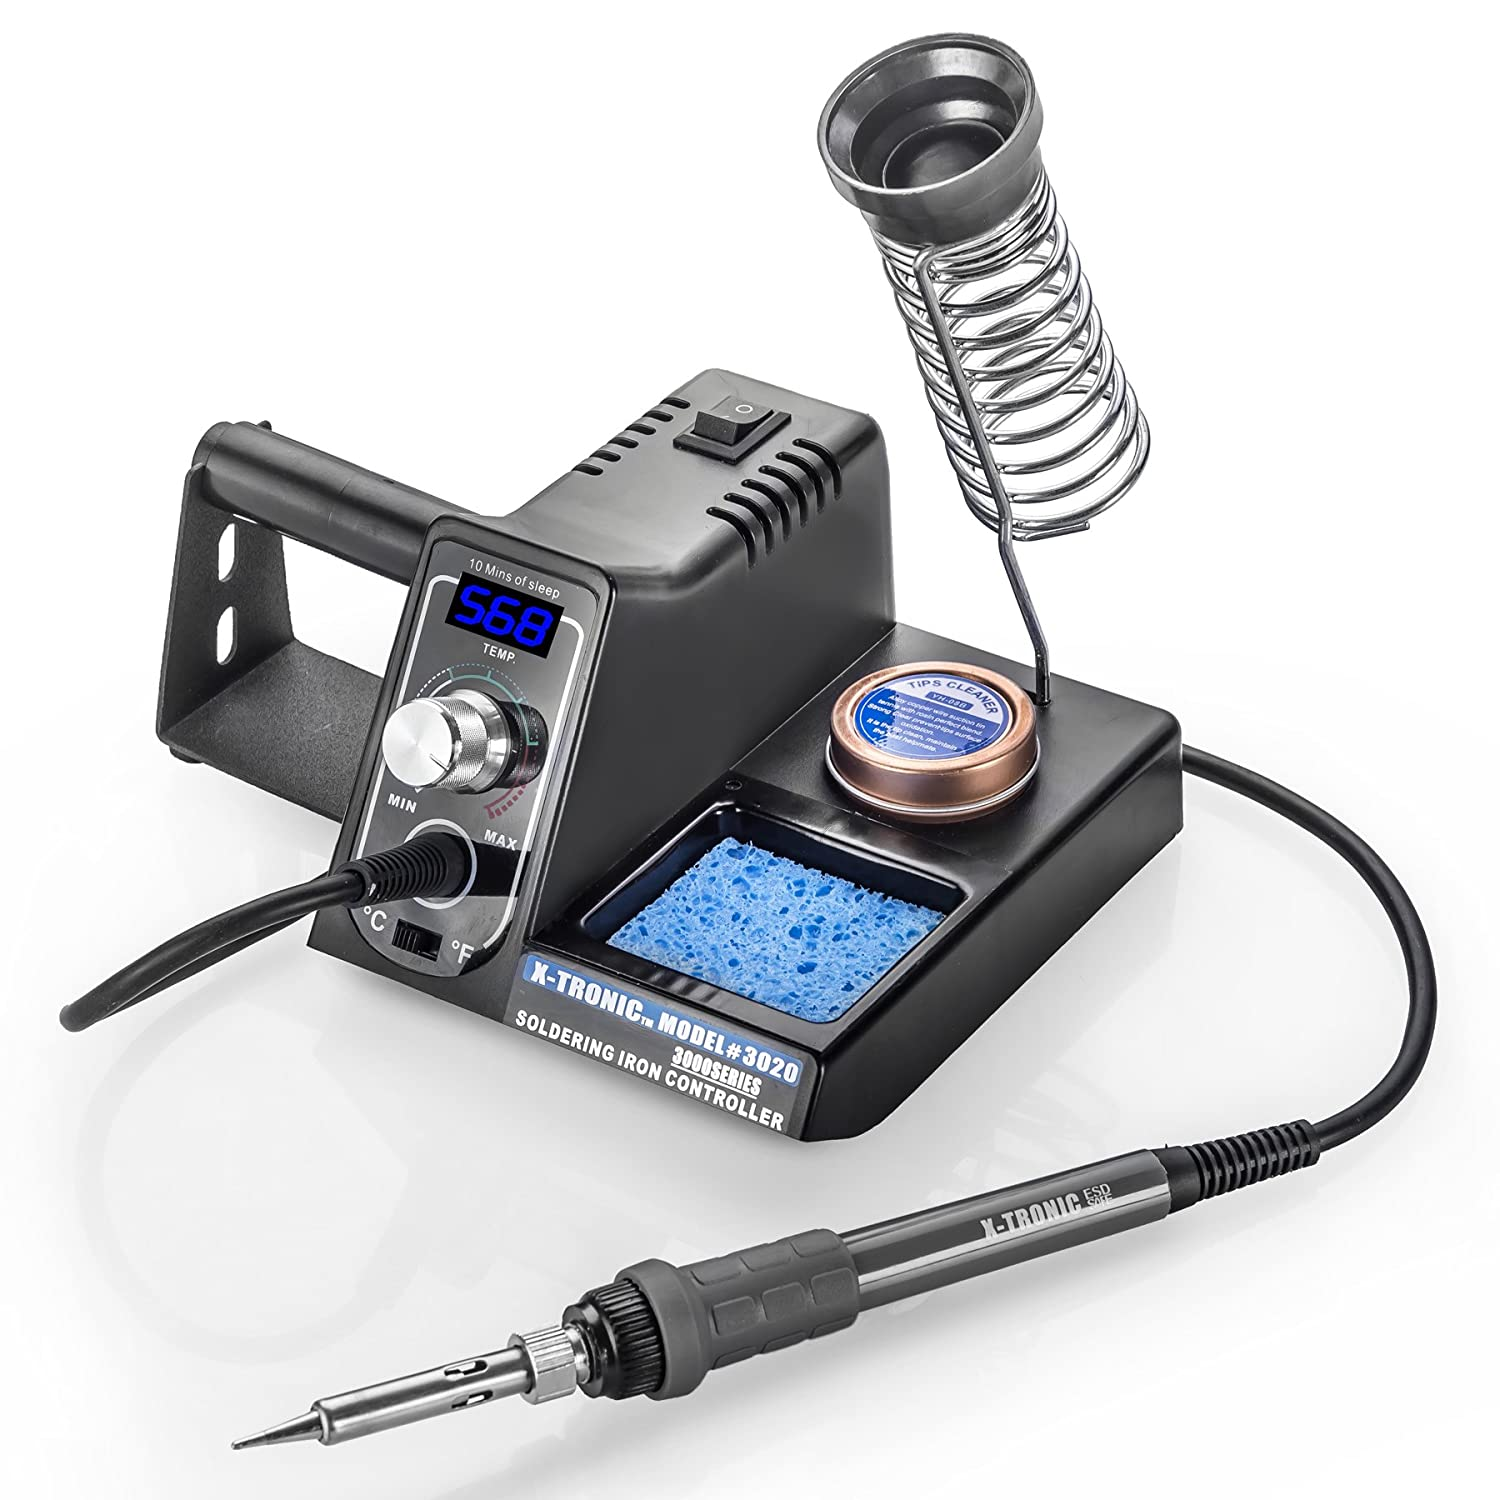 Picture of the X Tronic 3020 XTS Model Soldering Iron Station, showing both the stand and the pencil.